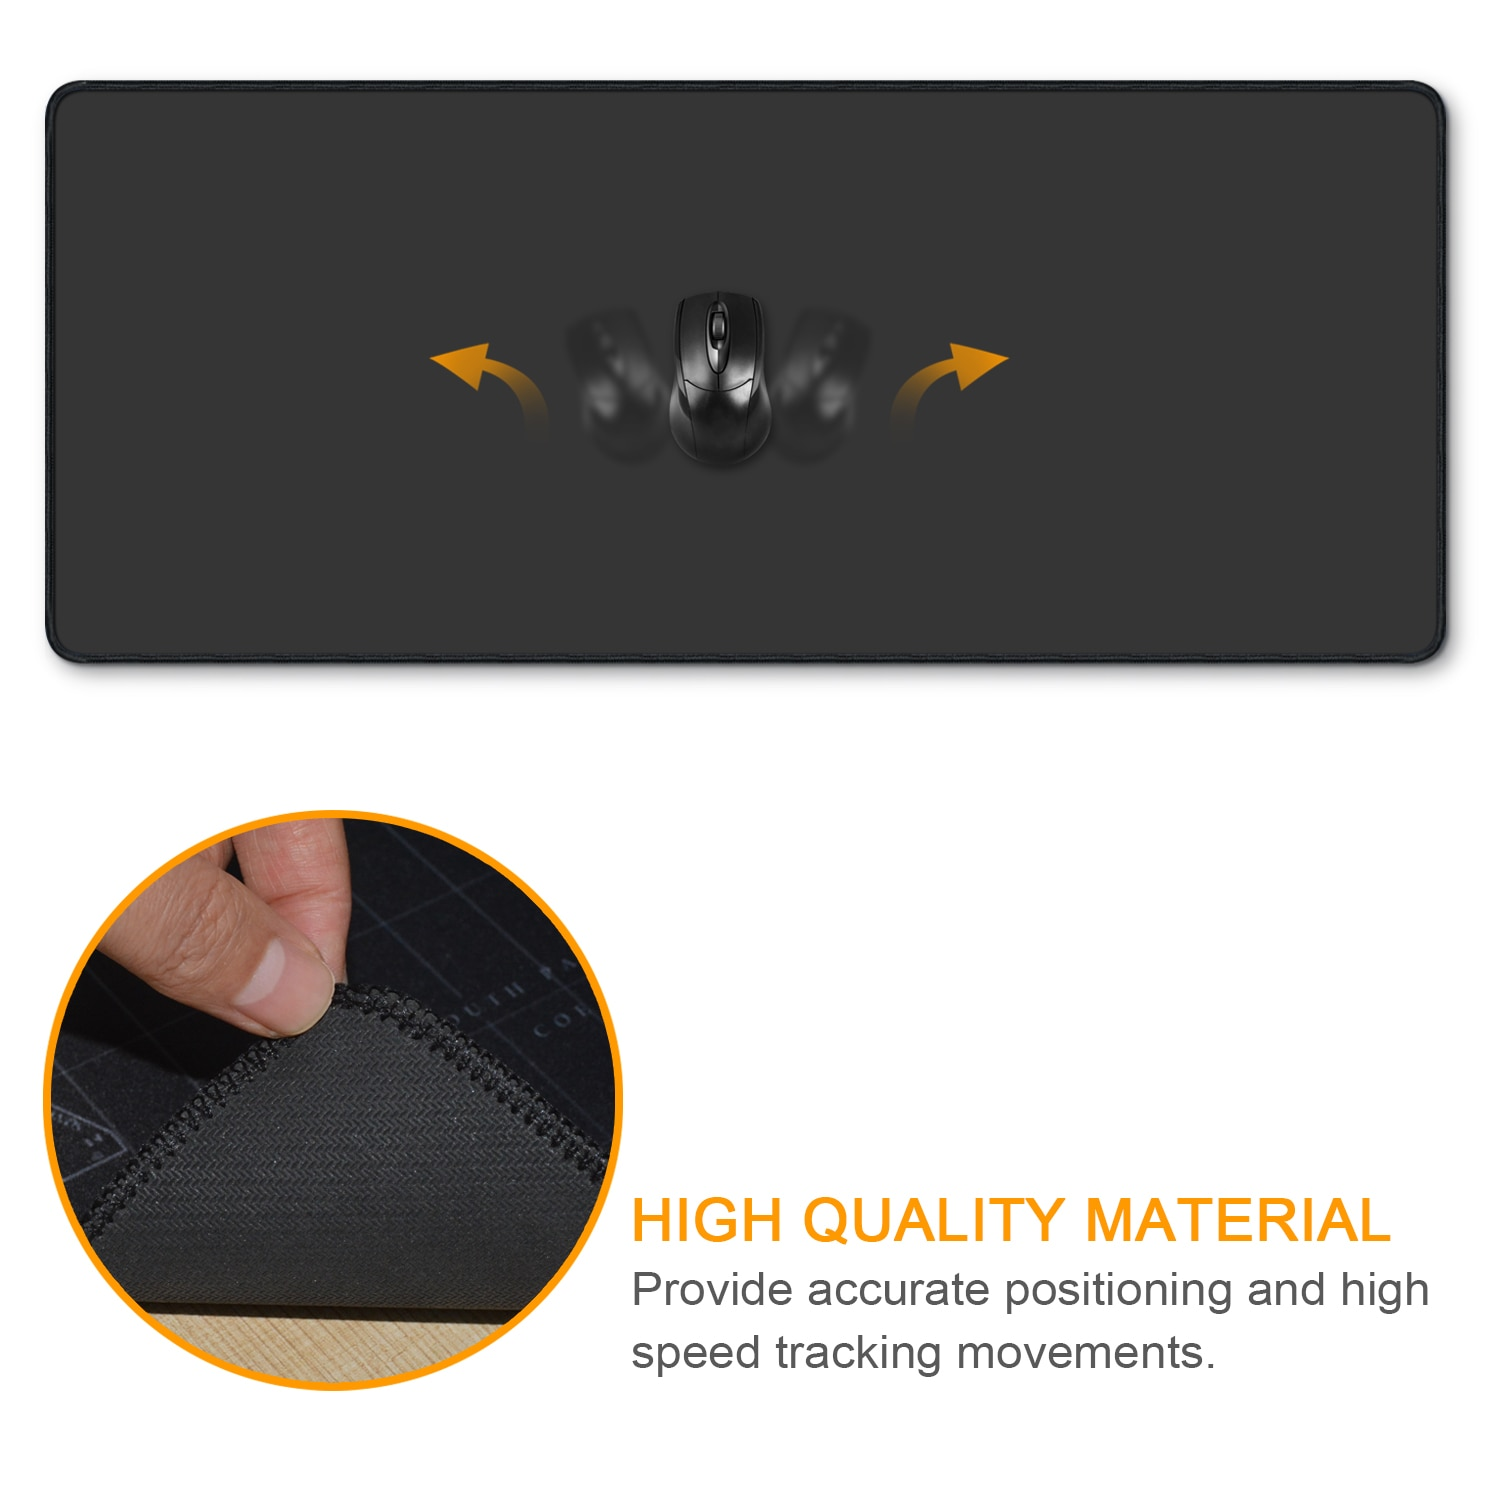 Computer Mouse Pad Gaming Mousepad Large Mouse Pad Gamer Xxl Mause Carpet Pc Desk Mat Keyboard Pad Zsps ราคาท ด ท ส ด